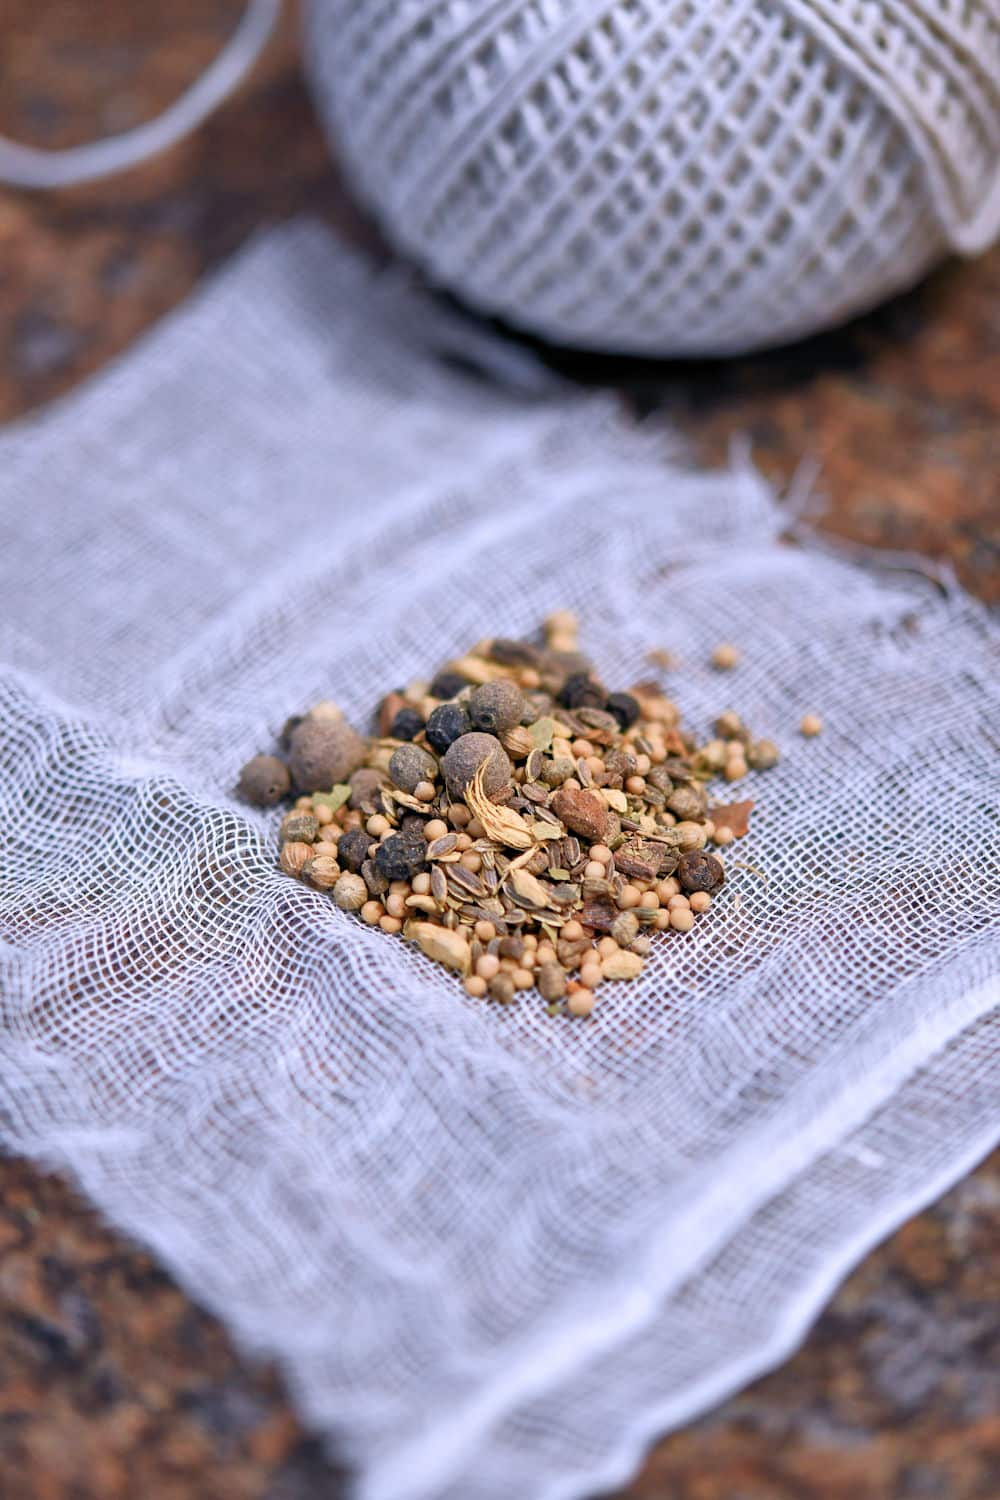 pickling spice on a small square of cheesecloth, ready to be tied and placed in saucepan